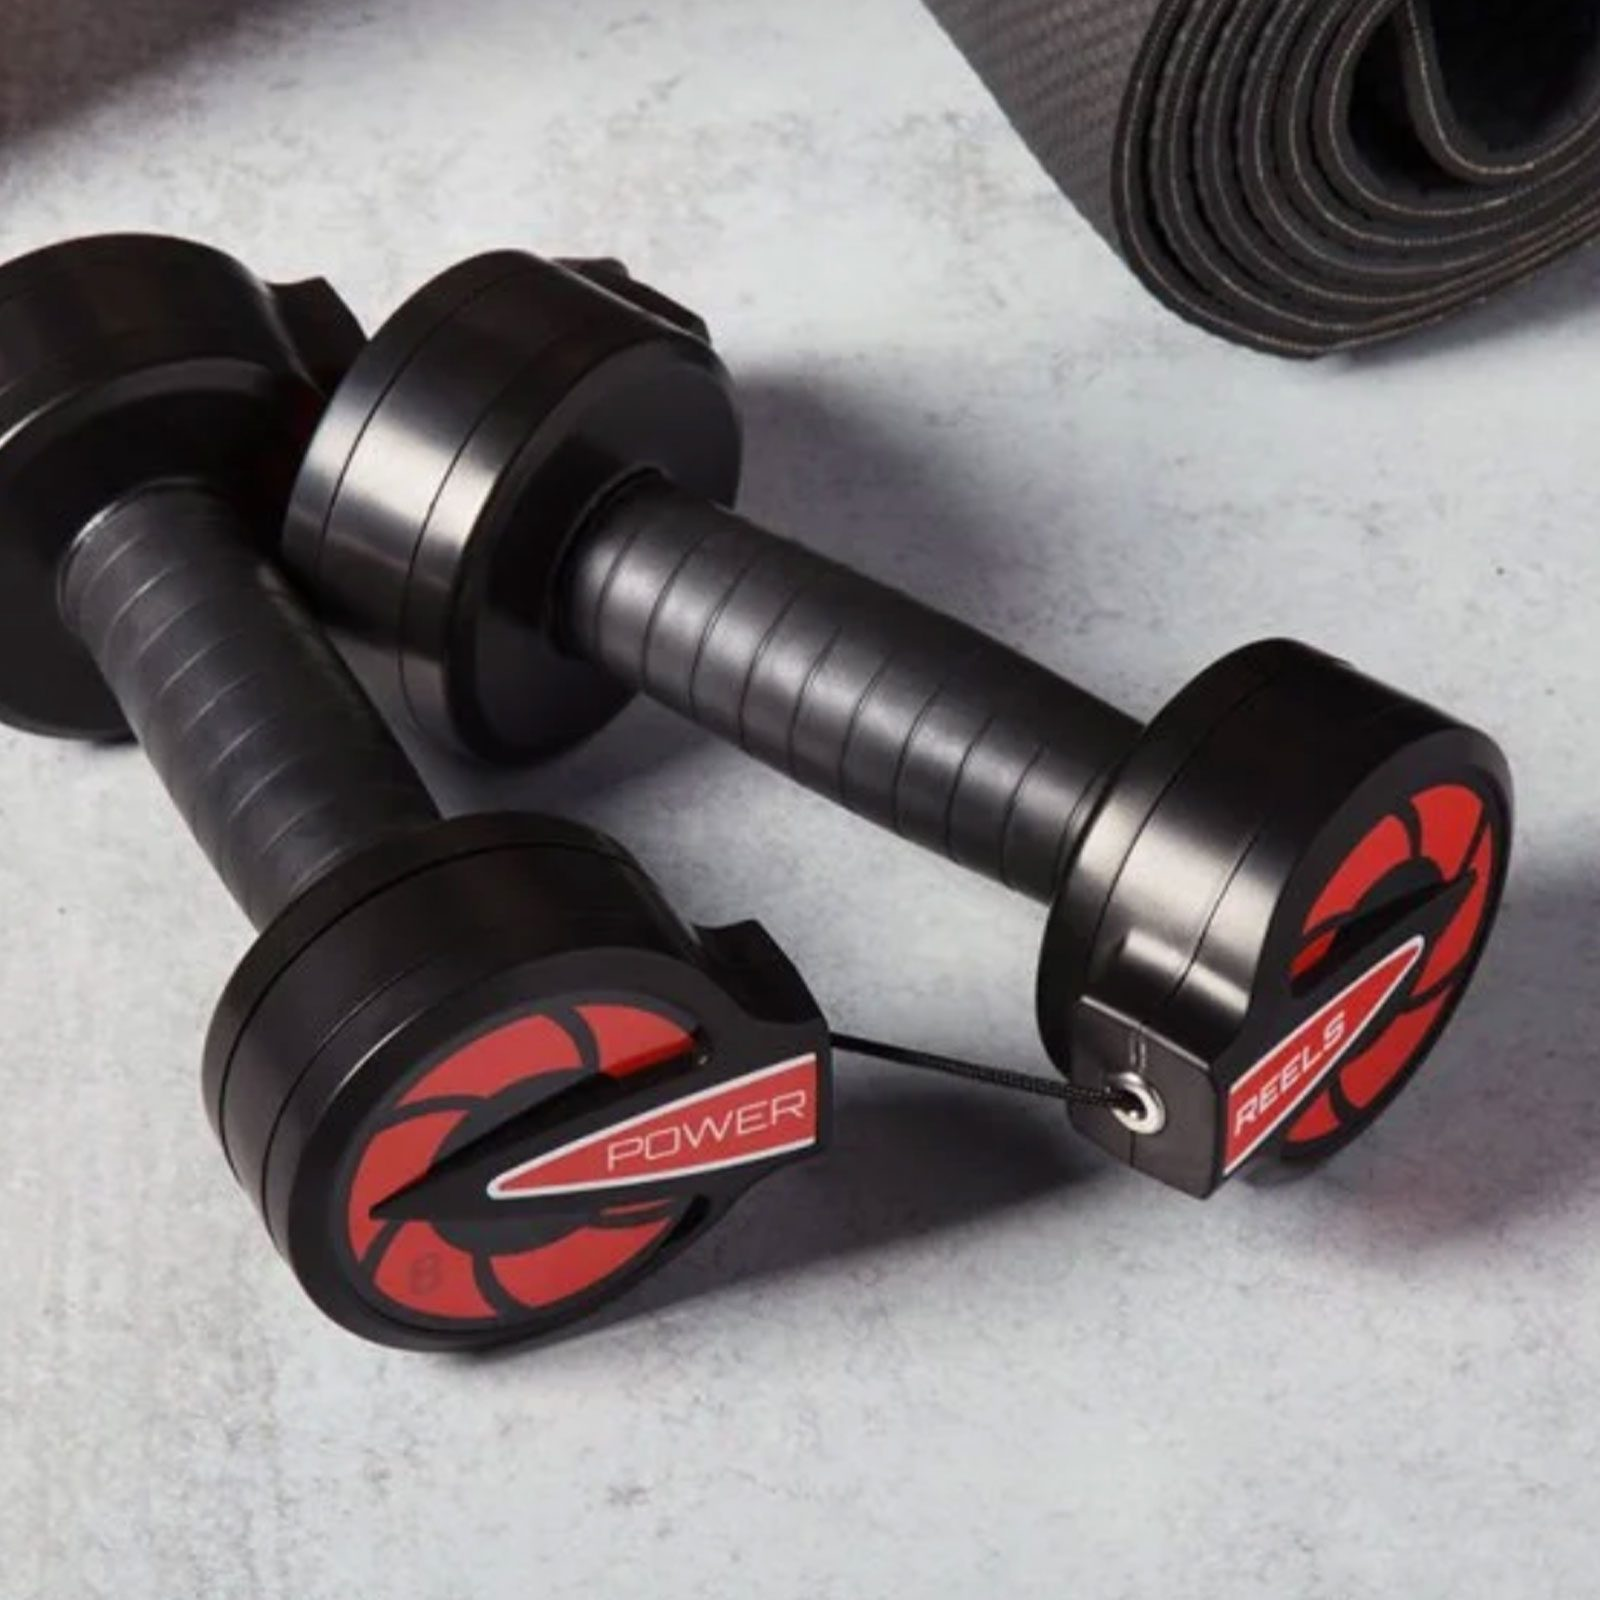 Power Reels Fitness Portable Resistance Training System